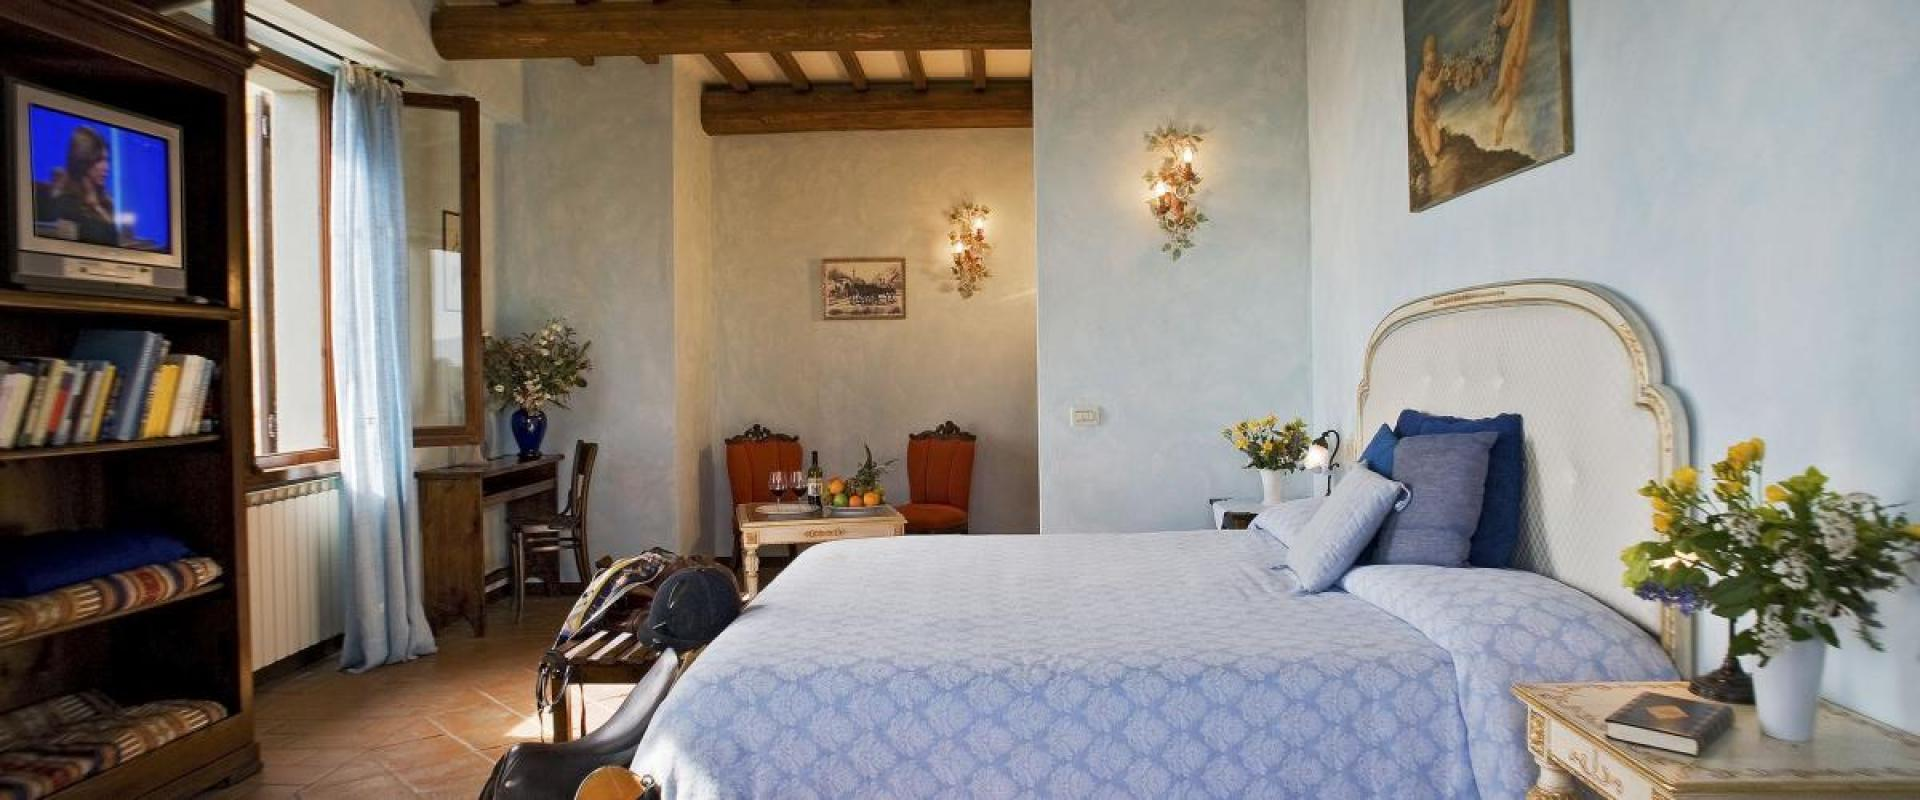 Double Room The Il Poggio Farmhouse and Resort in Siena